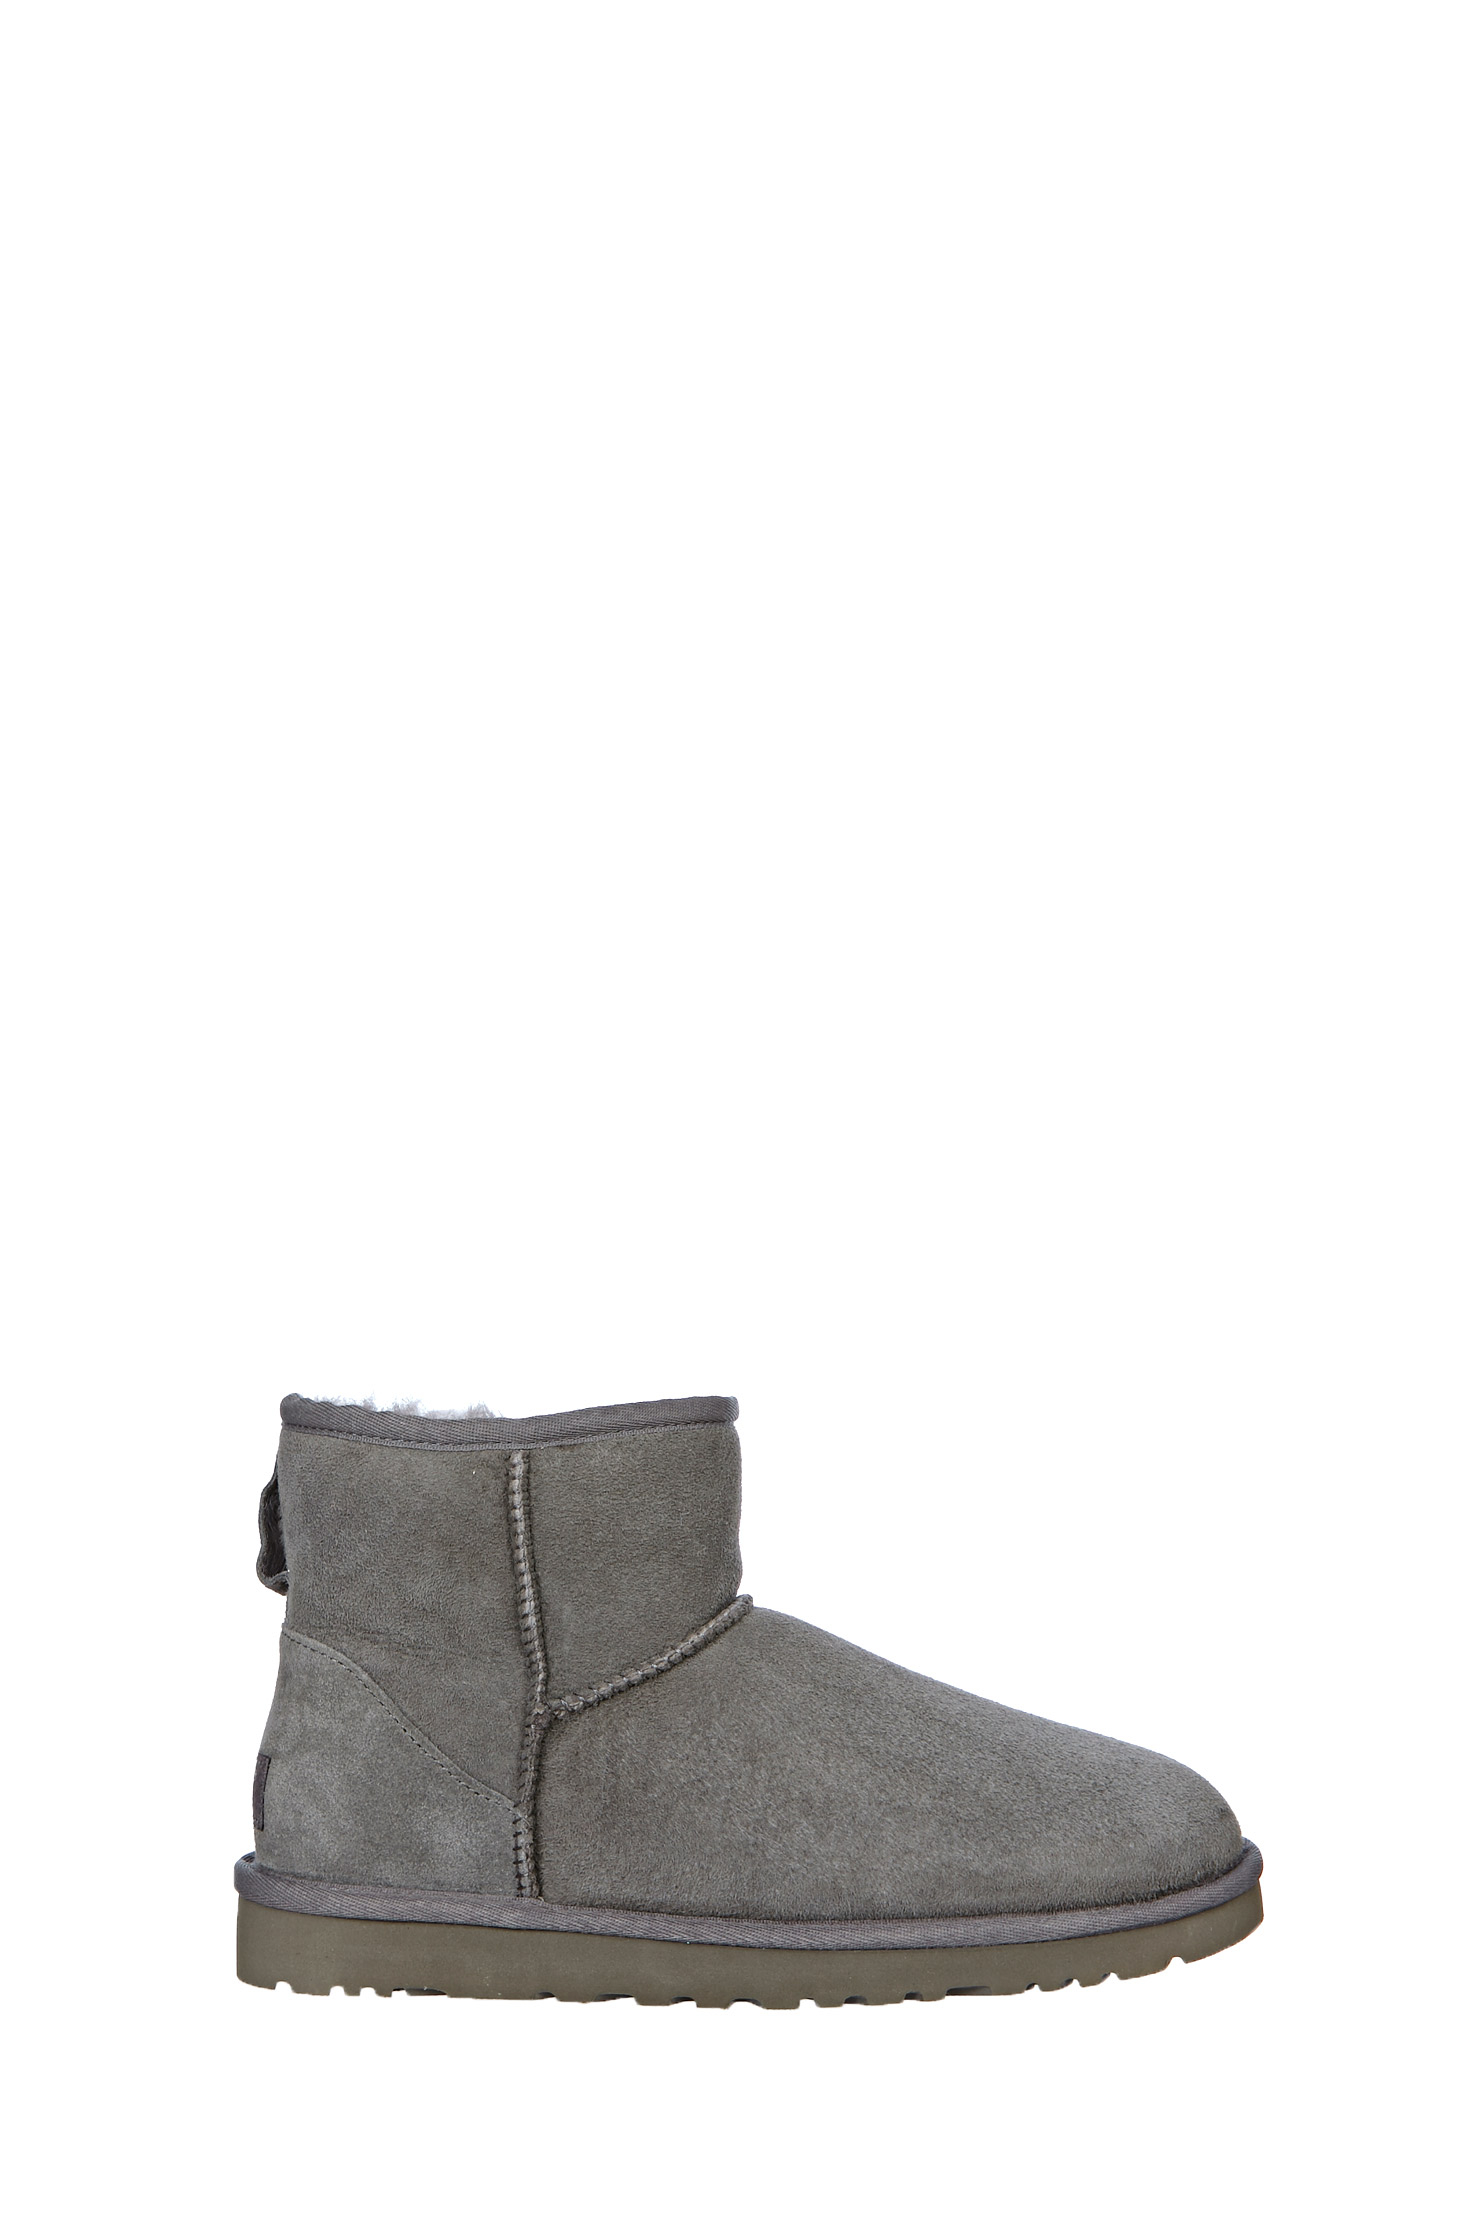 ugg boots w classic mini in gray lyst. Black Bedroom Furniture Sets. Home Design Ideas